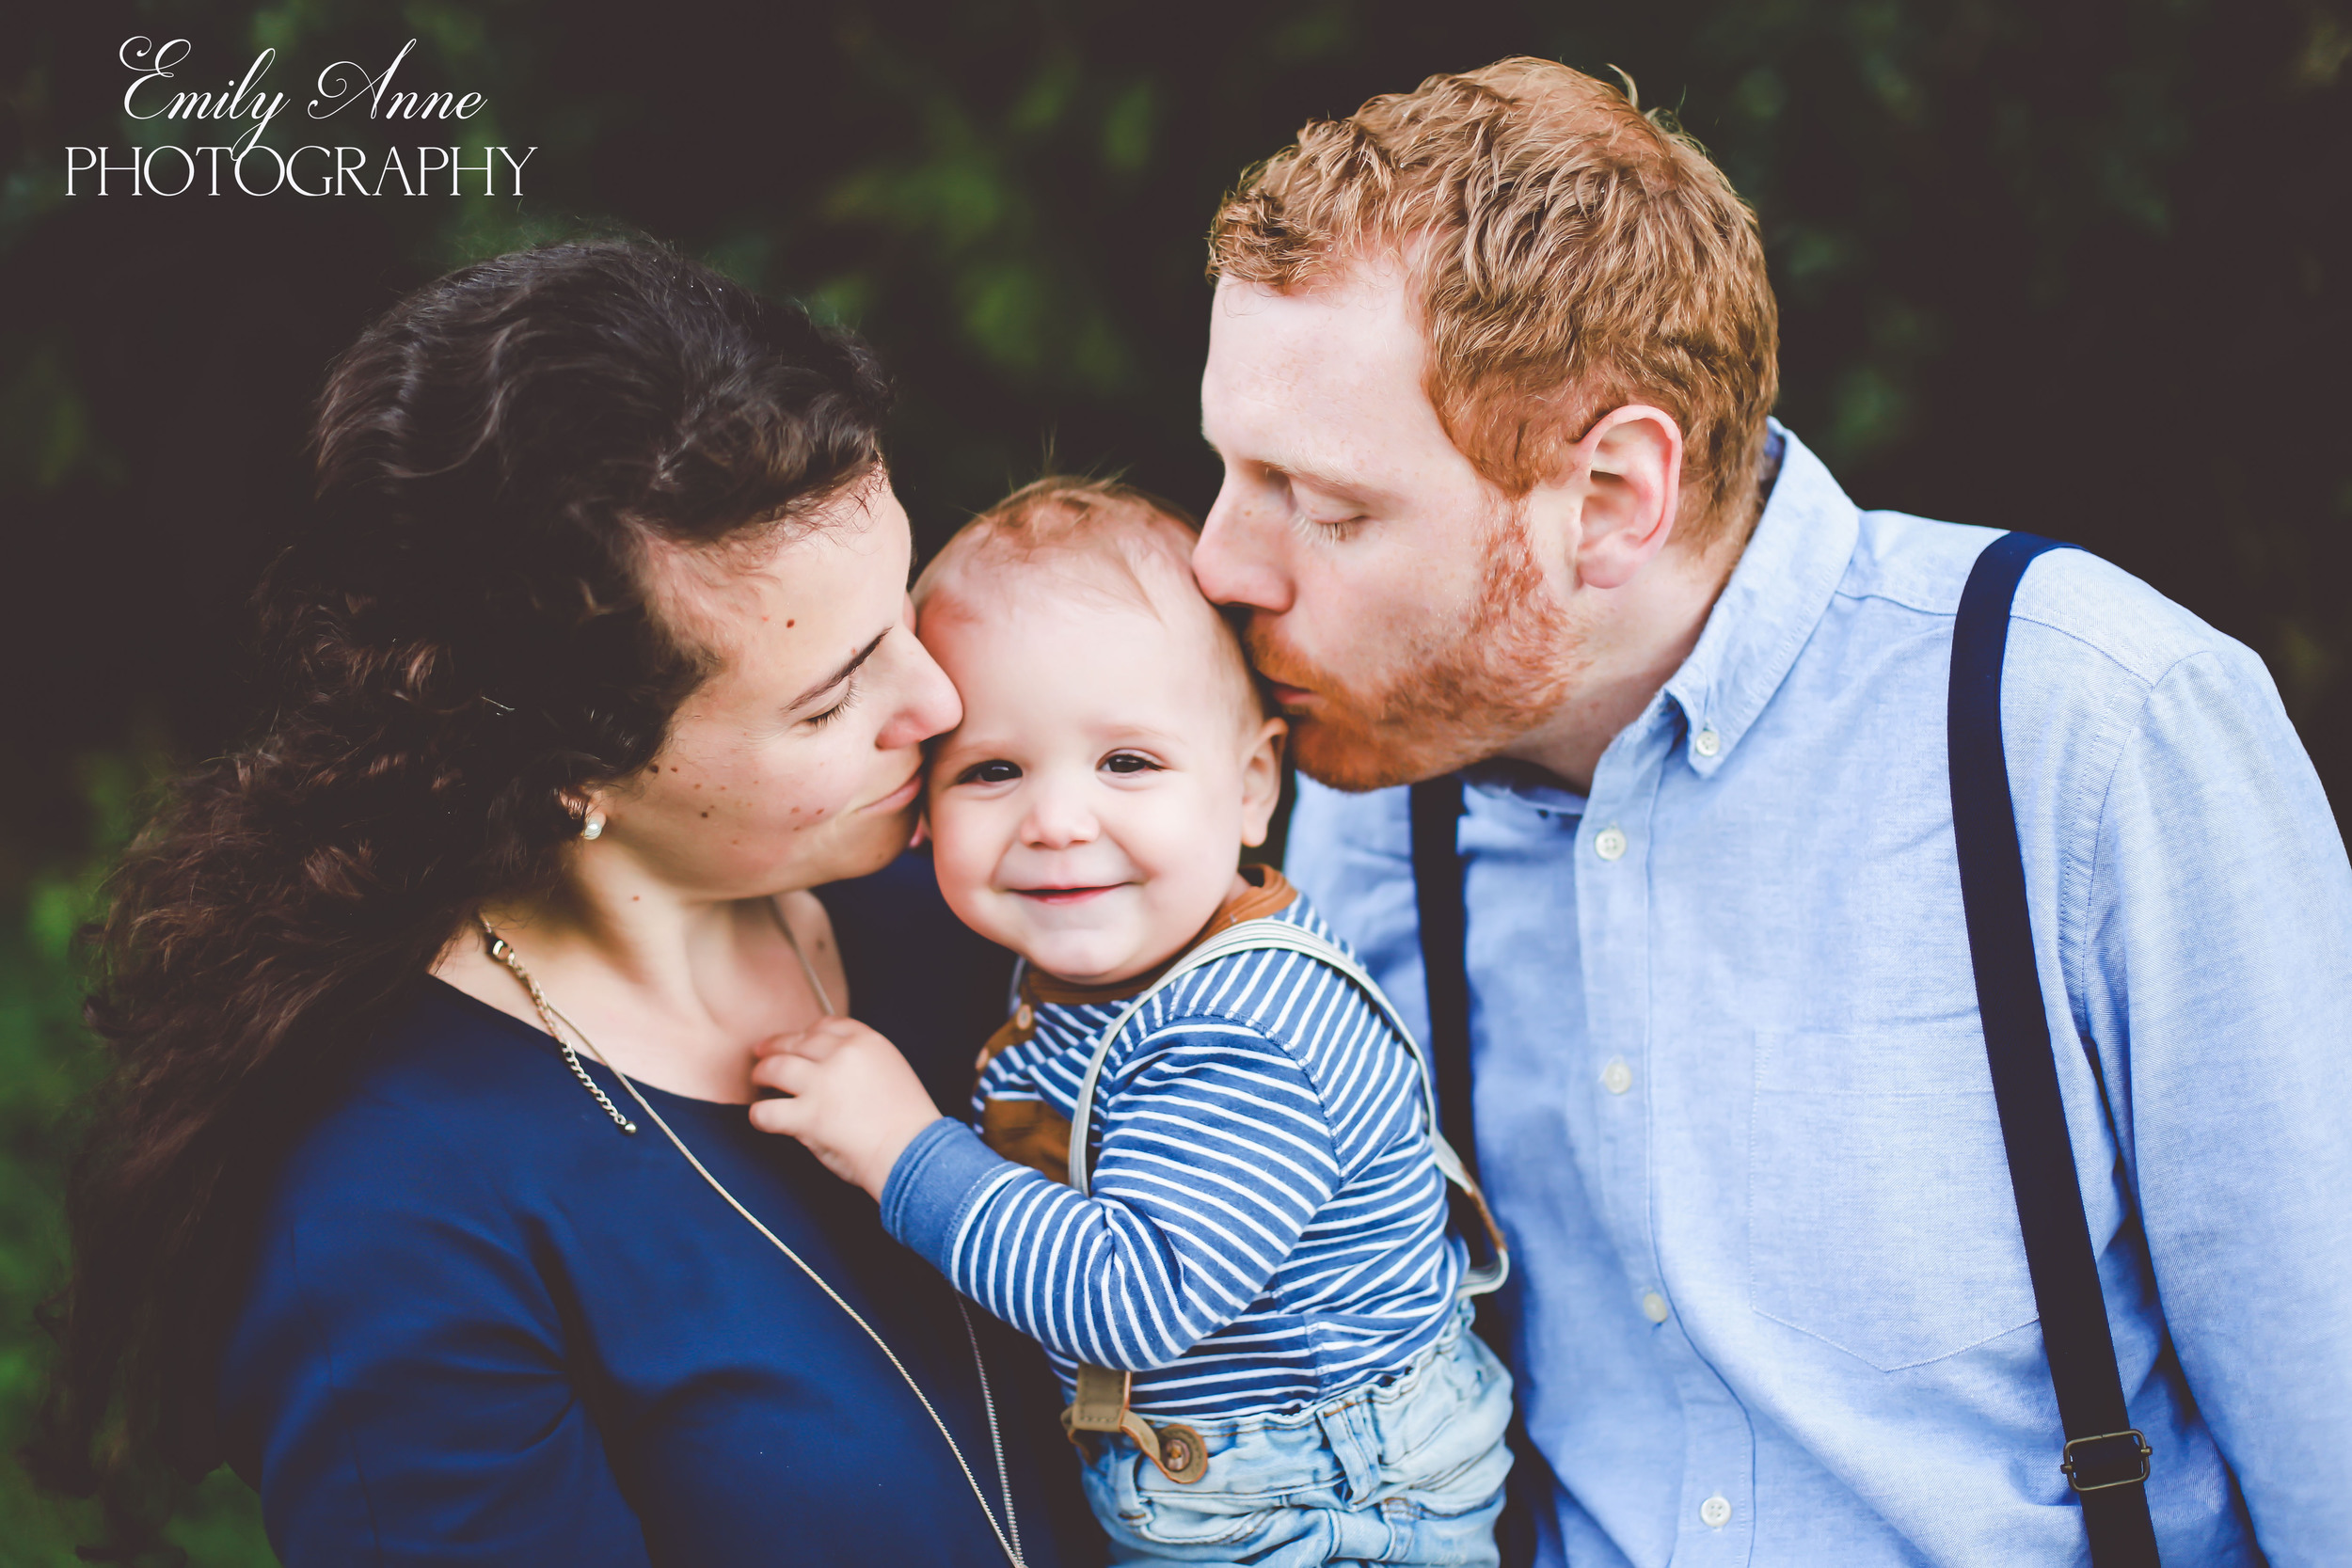 sweet southern family photos nashville/franklin/brentwood top affordable high quality family photographer Emily Anne photography  Posing tips for family pics  international photographer. shot in appenzell switzerland  wedding and portrait photos based in nashville tennessee